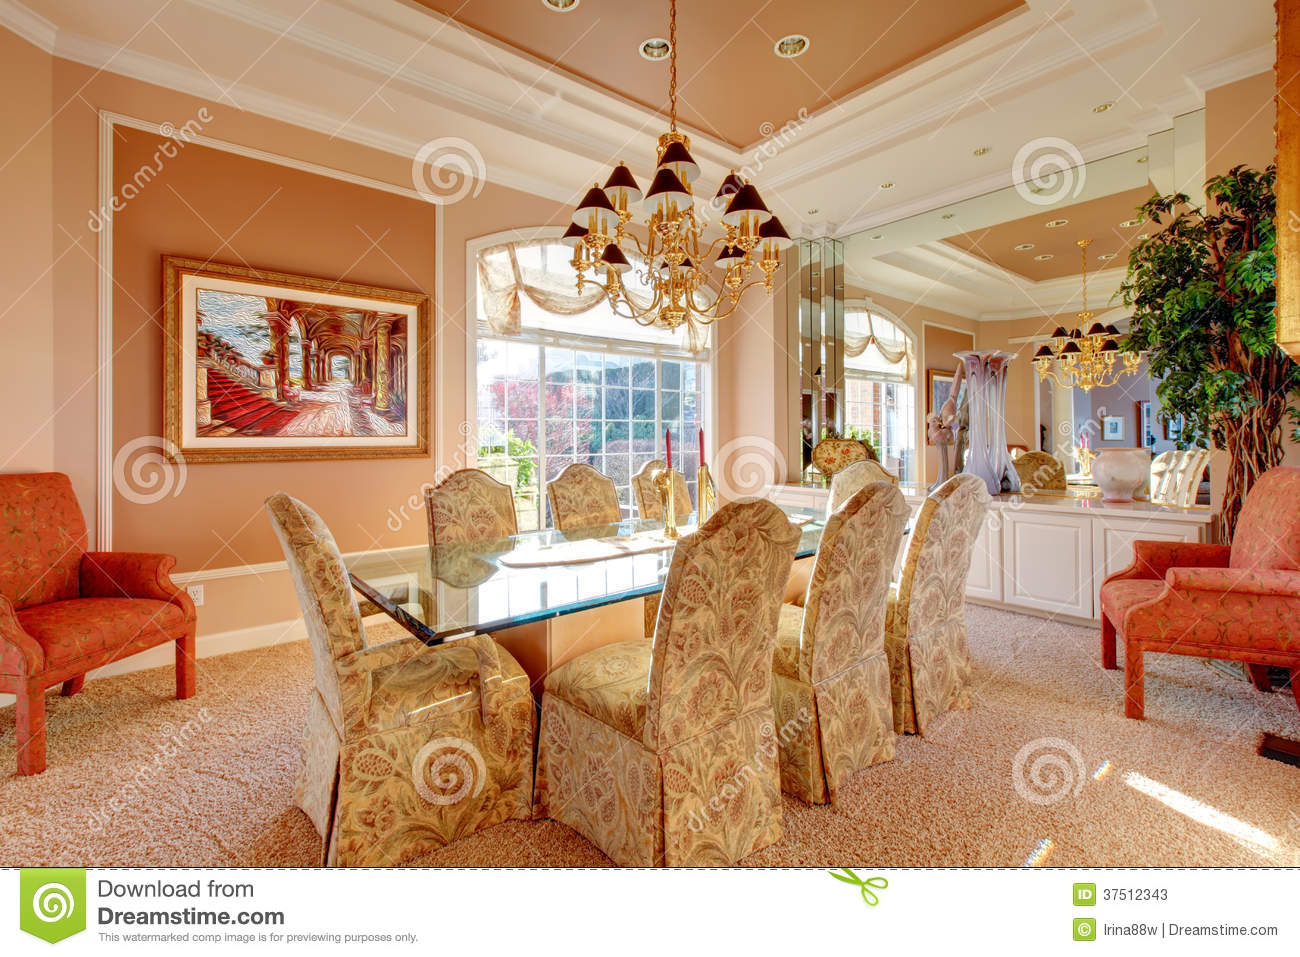 Luxuriant bright dining room stock photos image 37512343 - Wonderful antique dining room ideas elegant supper time ...